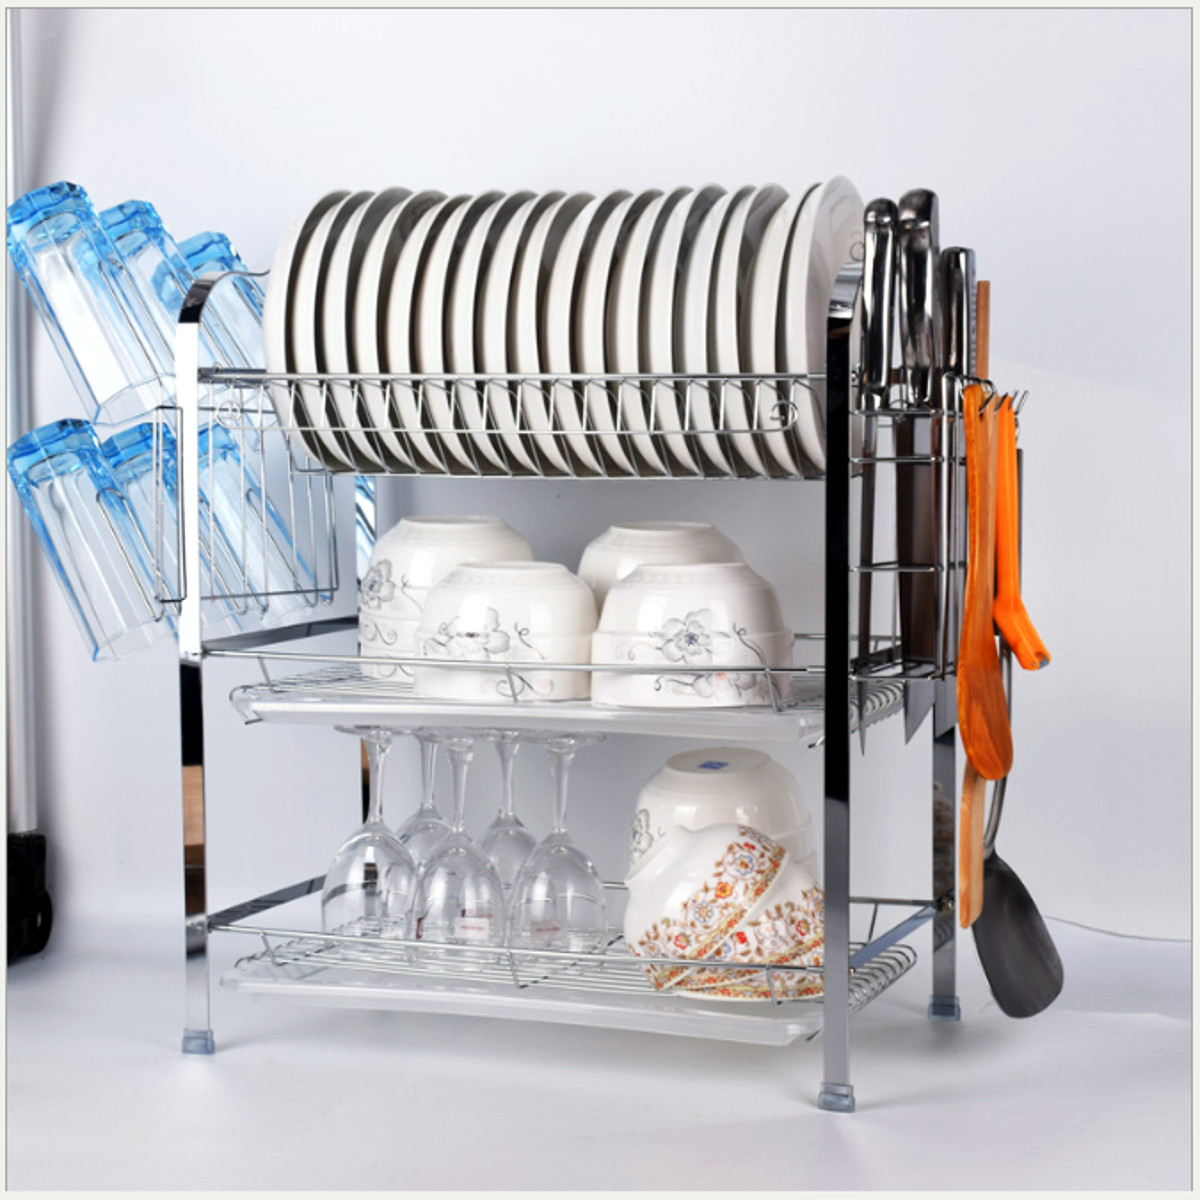 Kitchen Dishes Drain Holder Bowl Cup Pot Rack Storage Organizer Decor Gift FI